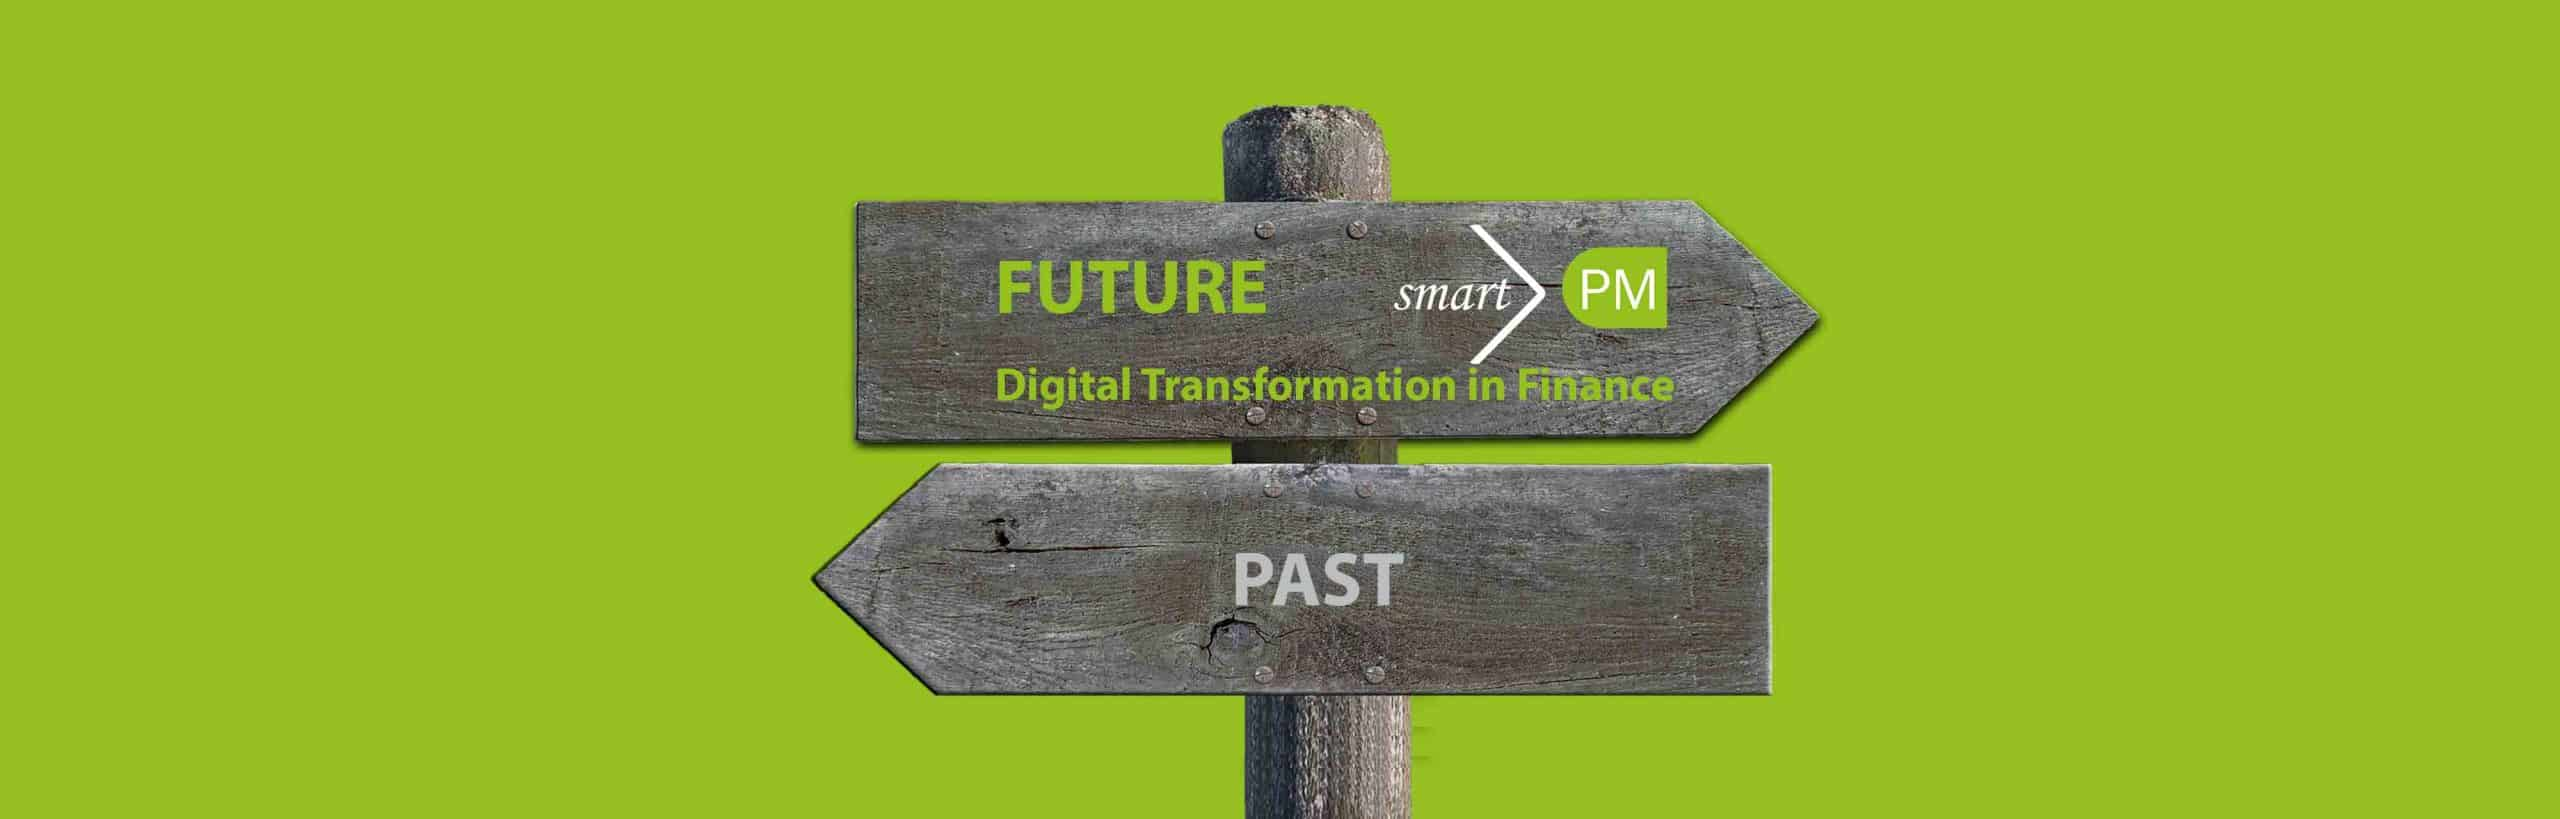 Digital Transformation in Finance smartPM solutions